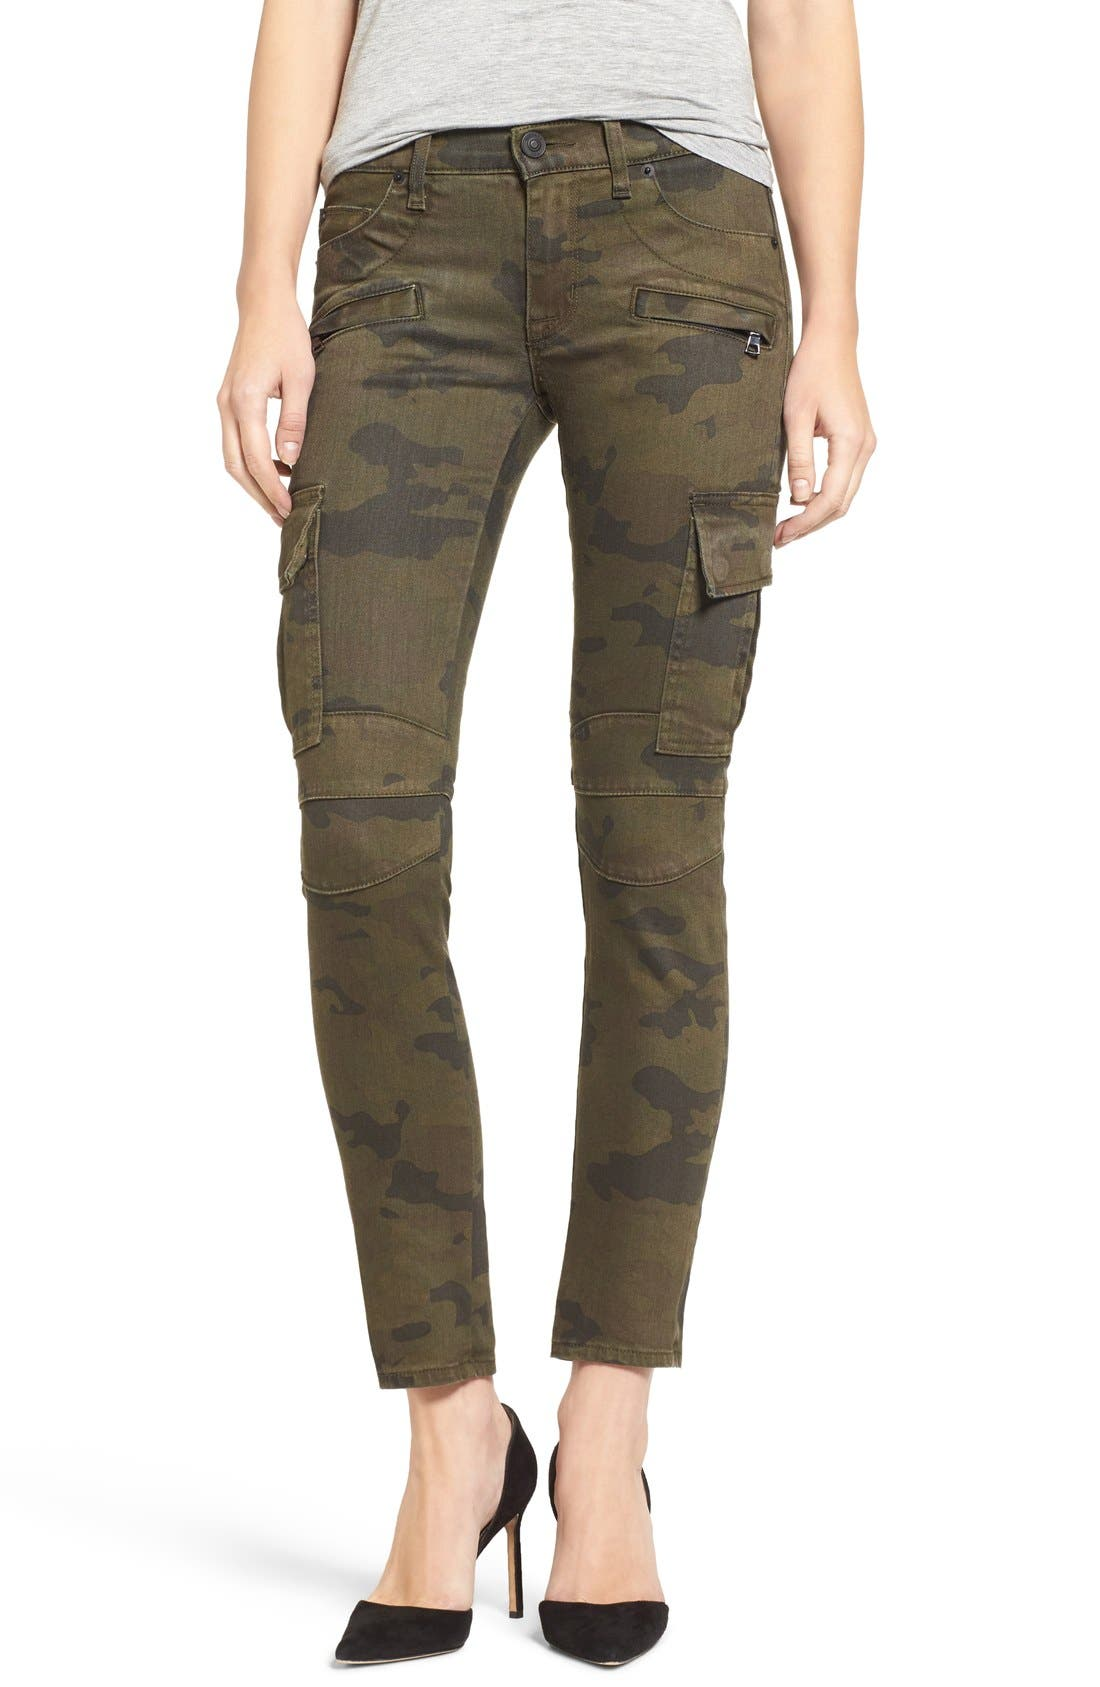 Alternate Image 1 Selected - Hudson Jeans 'Colby' Ankle Skinny Cargo Pants